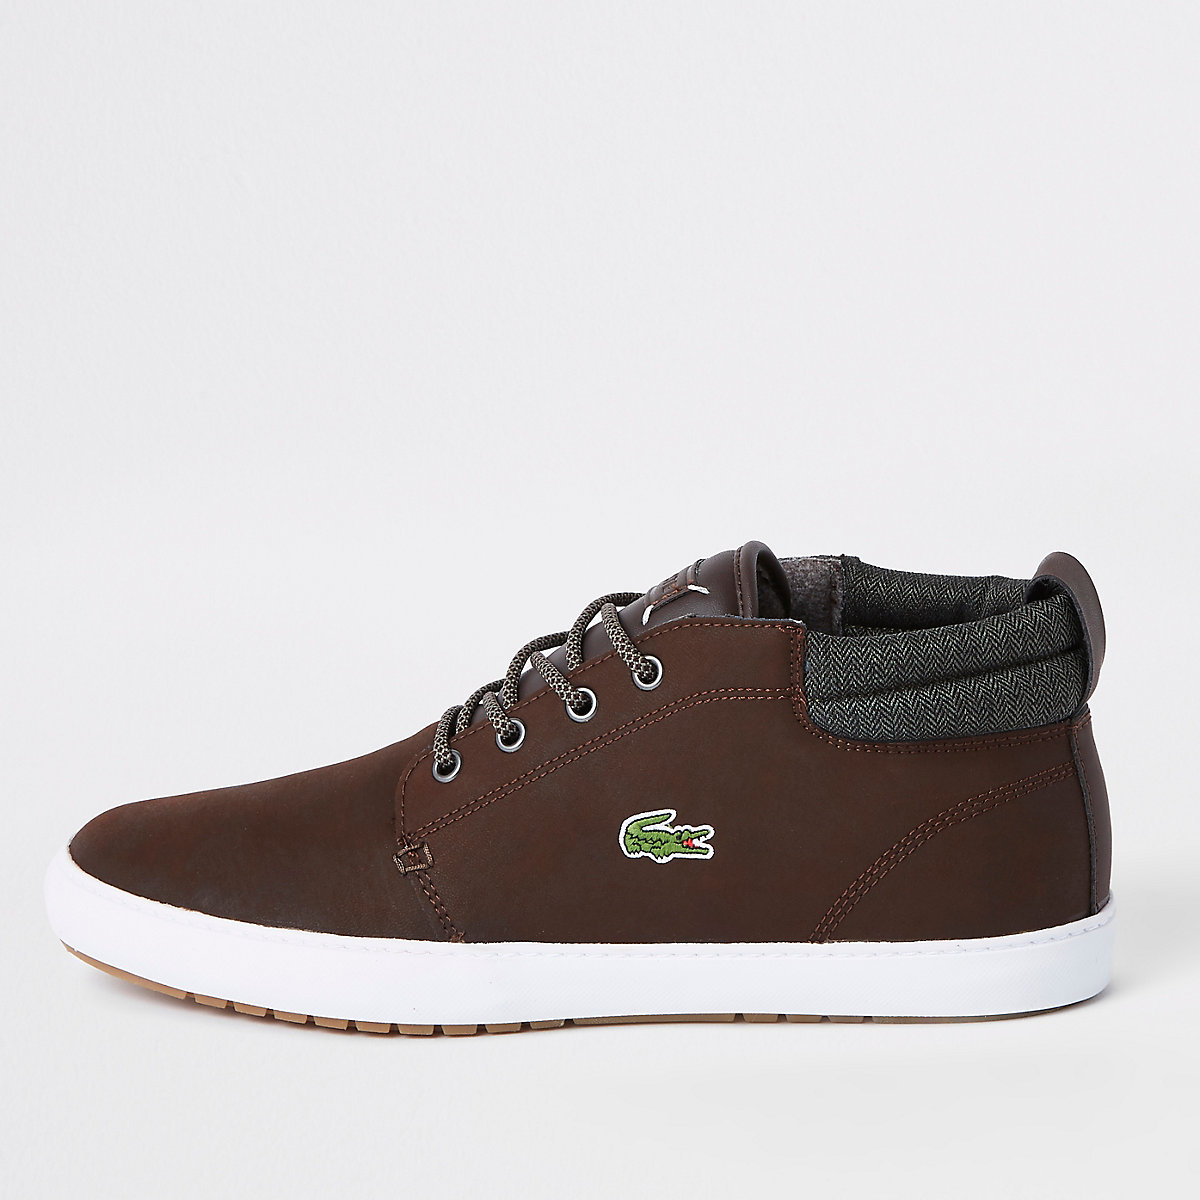 Lacoste brown leather mid top trainers